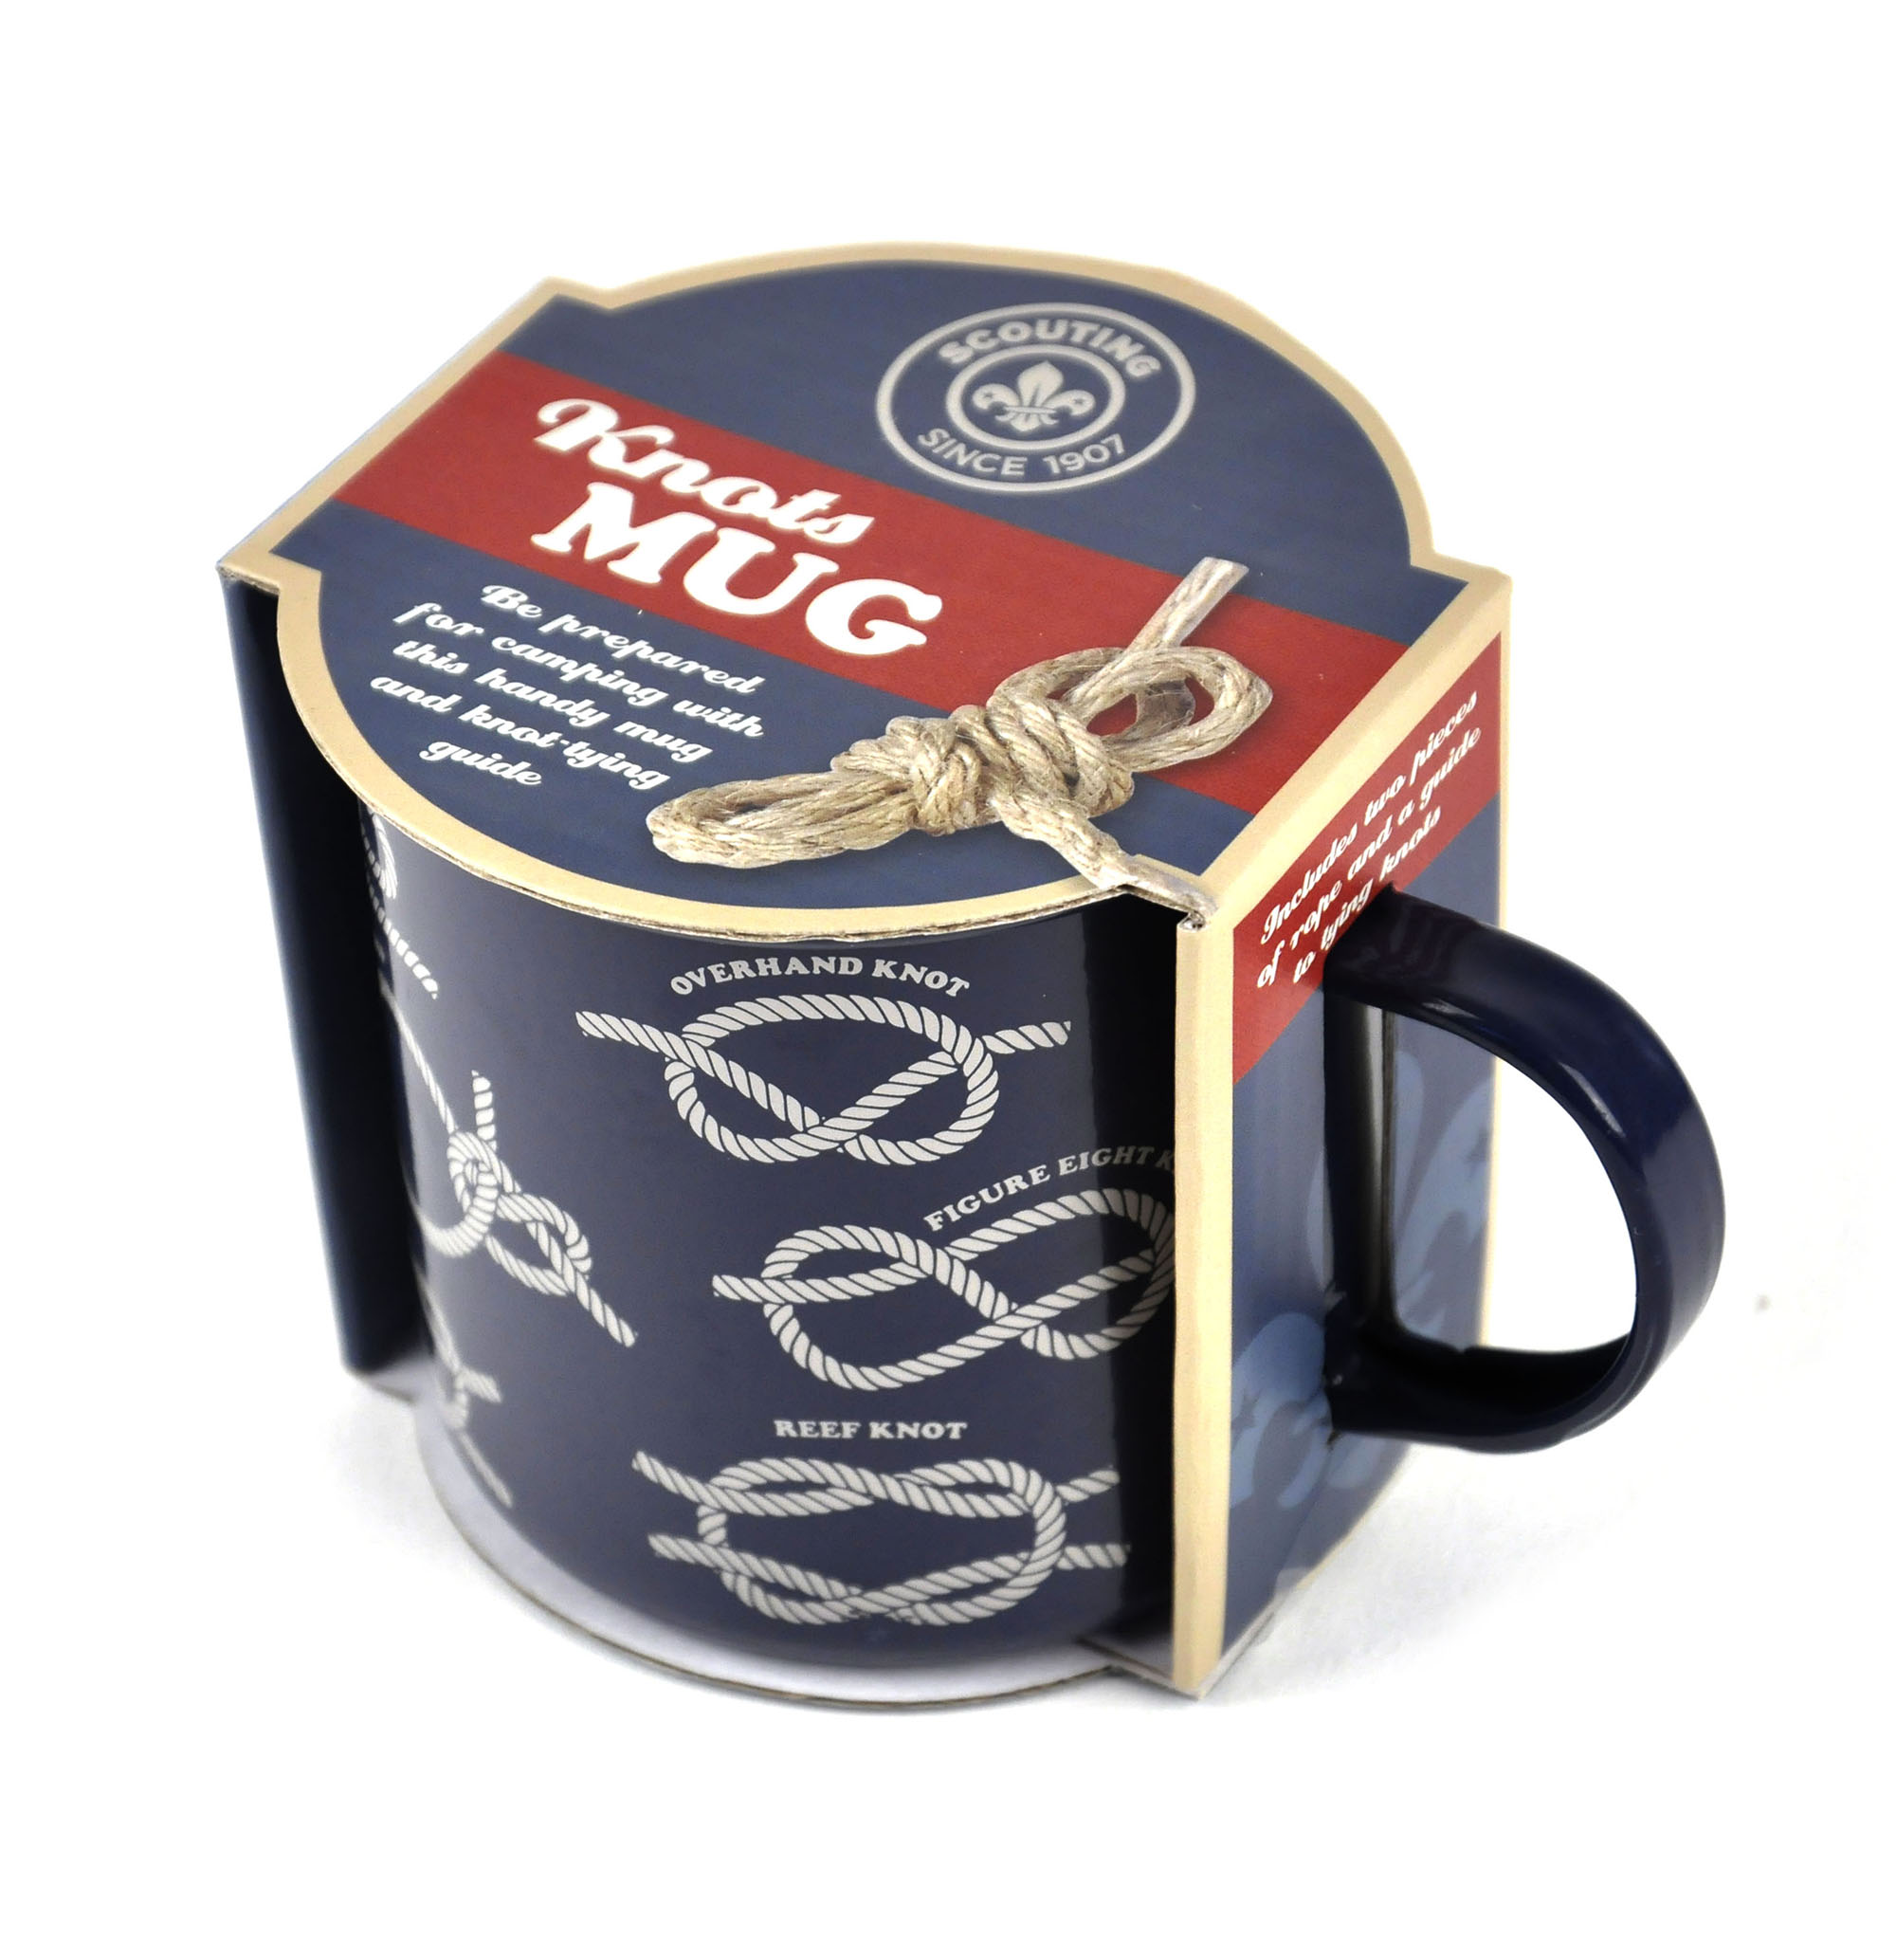 Scout Knots Mug With Rope And Scouting Knots Guide